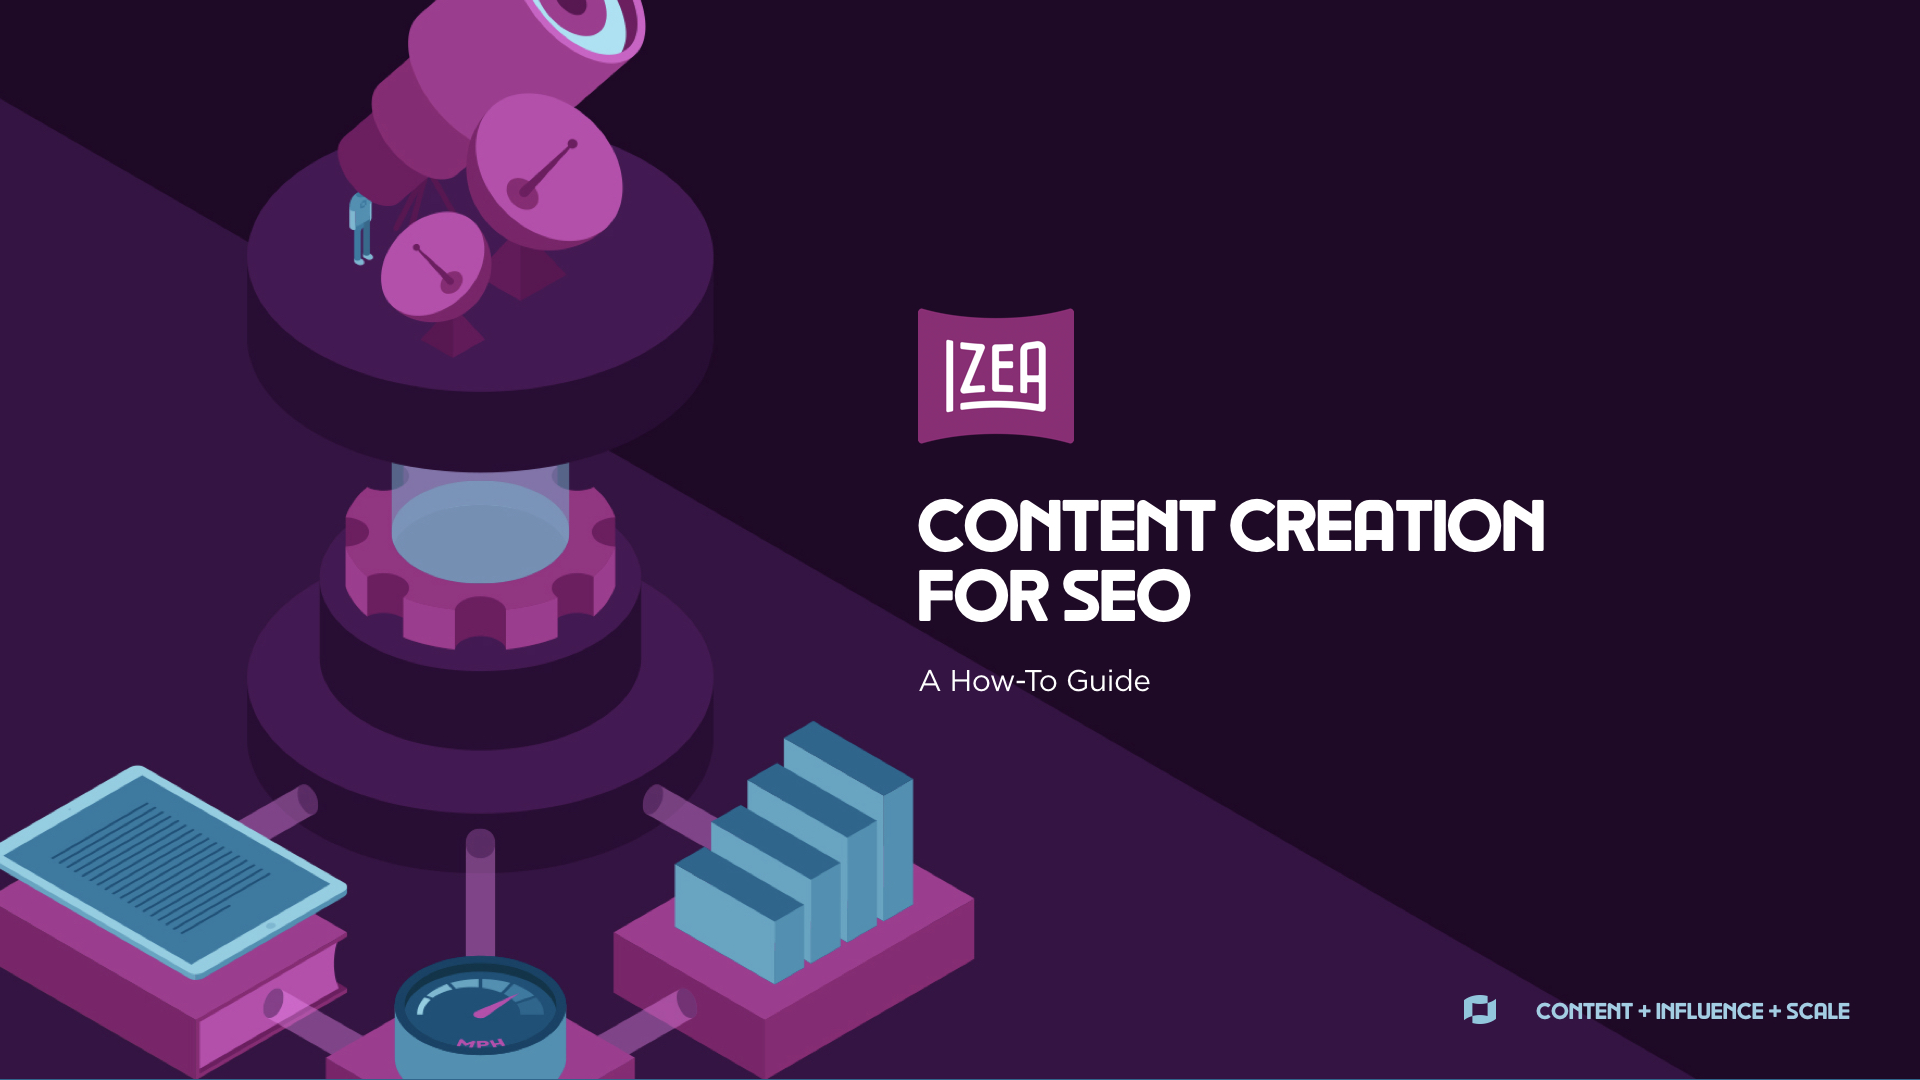 Content Creation for SEO